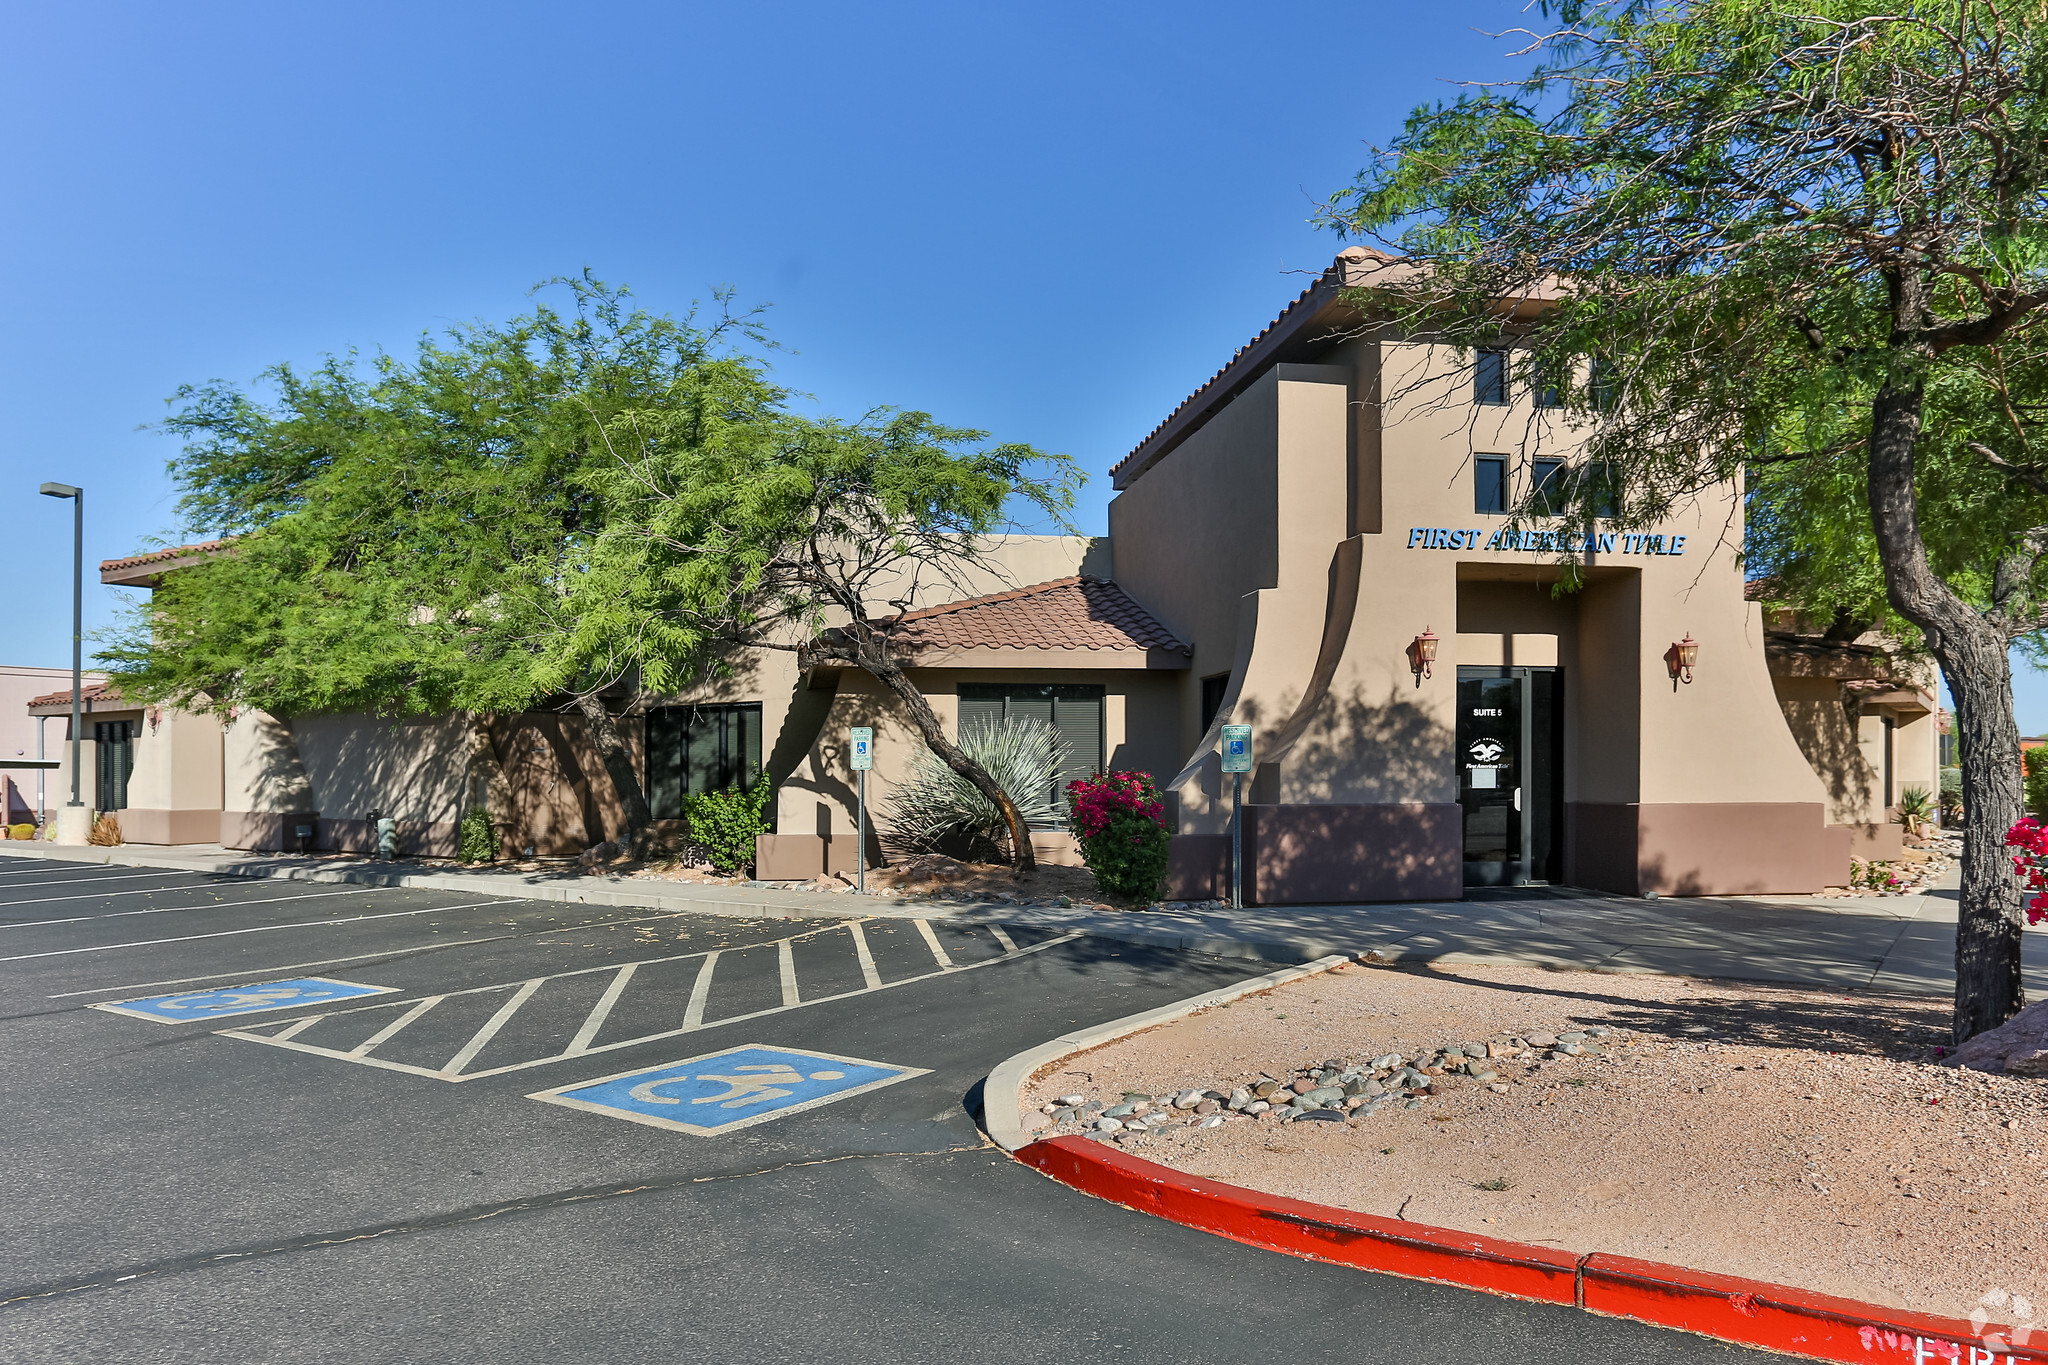 6877 S Kings Ranch Rd, Gold Canyon AZ 85118 Office Space